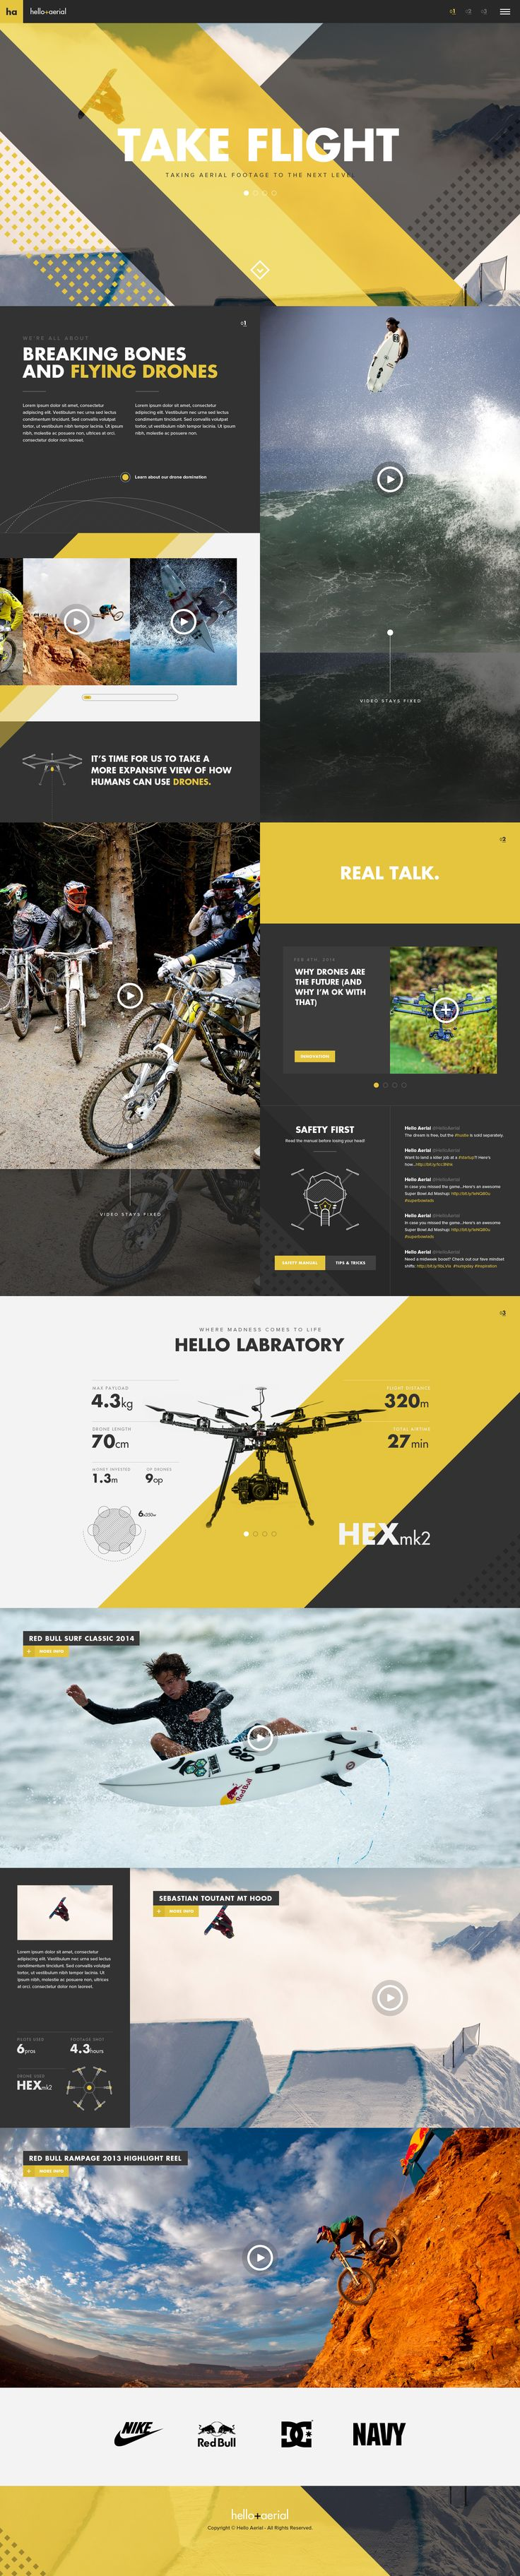 Ha-dribb-full #ui #mobile #design #ResponsiveDesign #Web #UI #UX #WordPress…